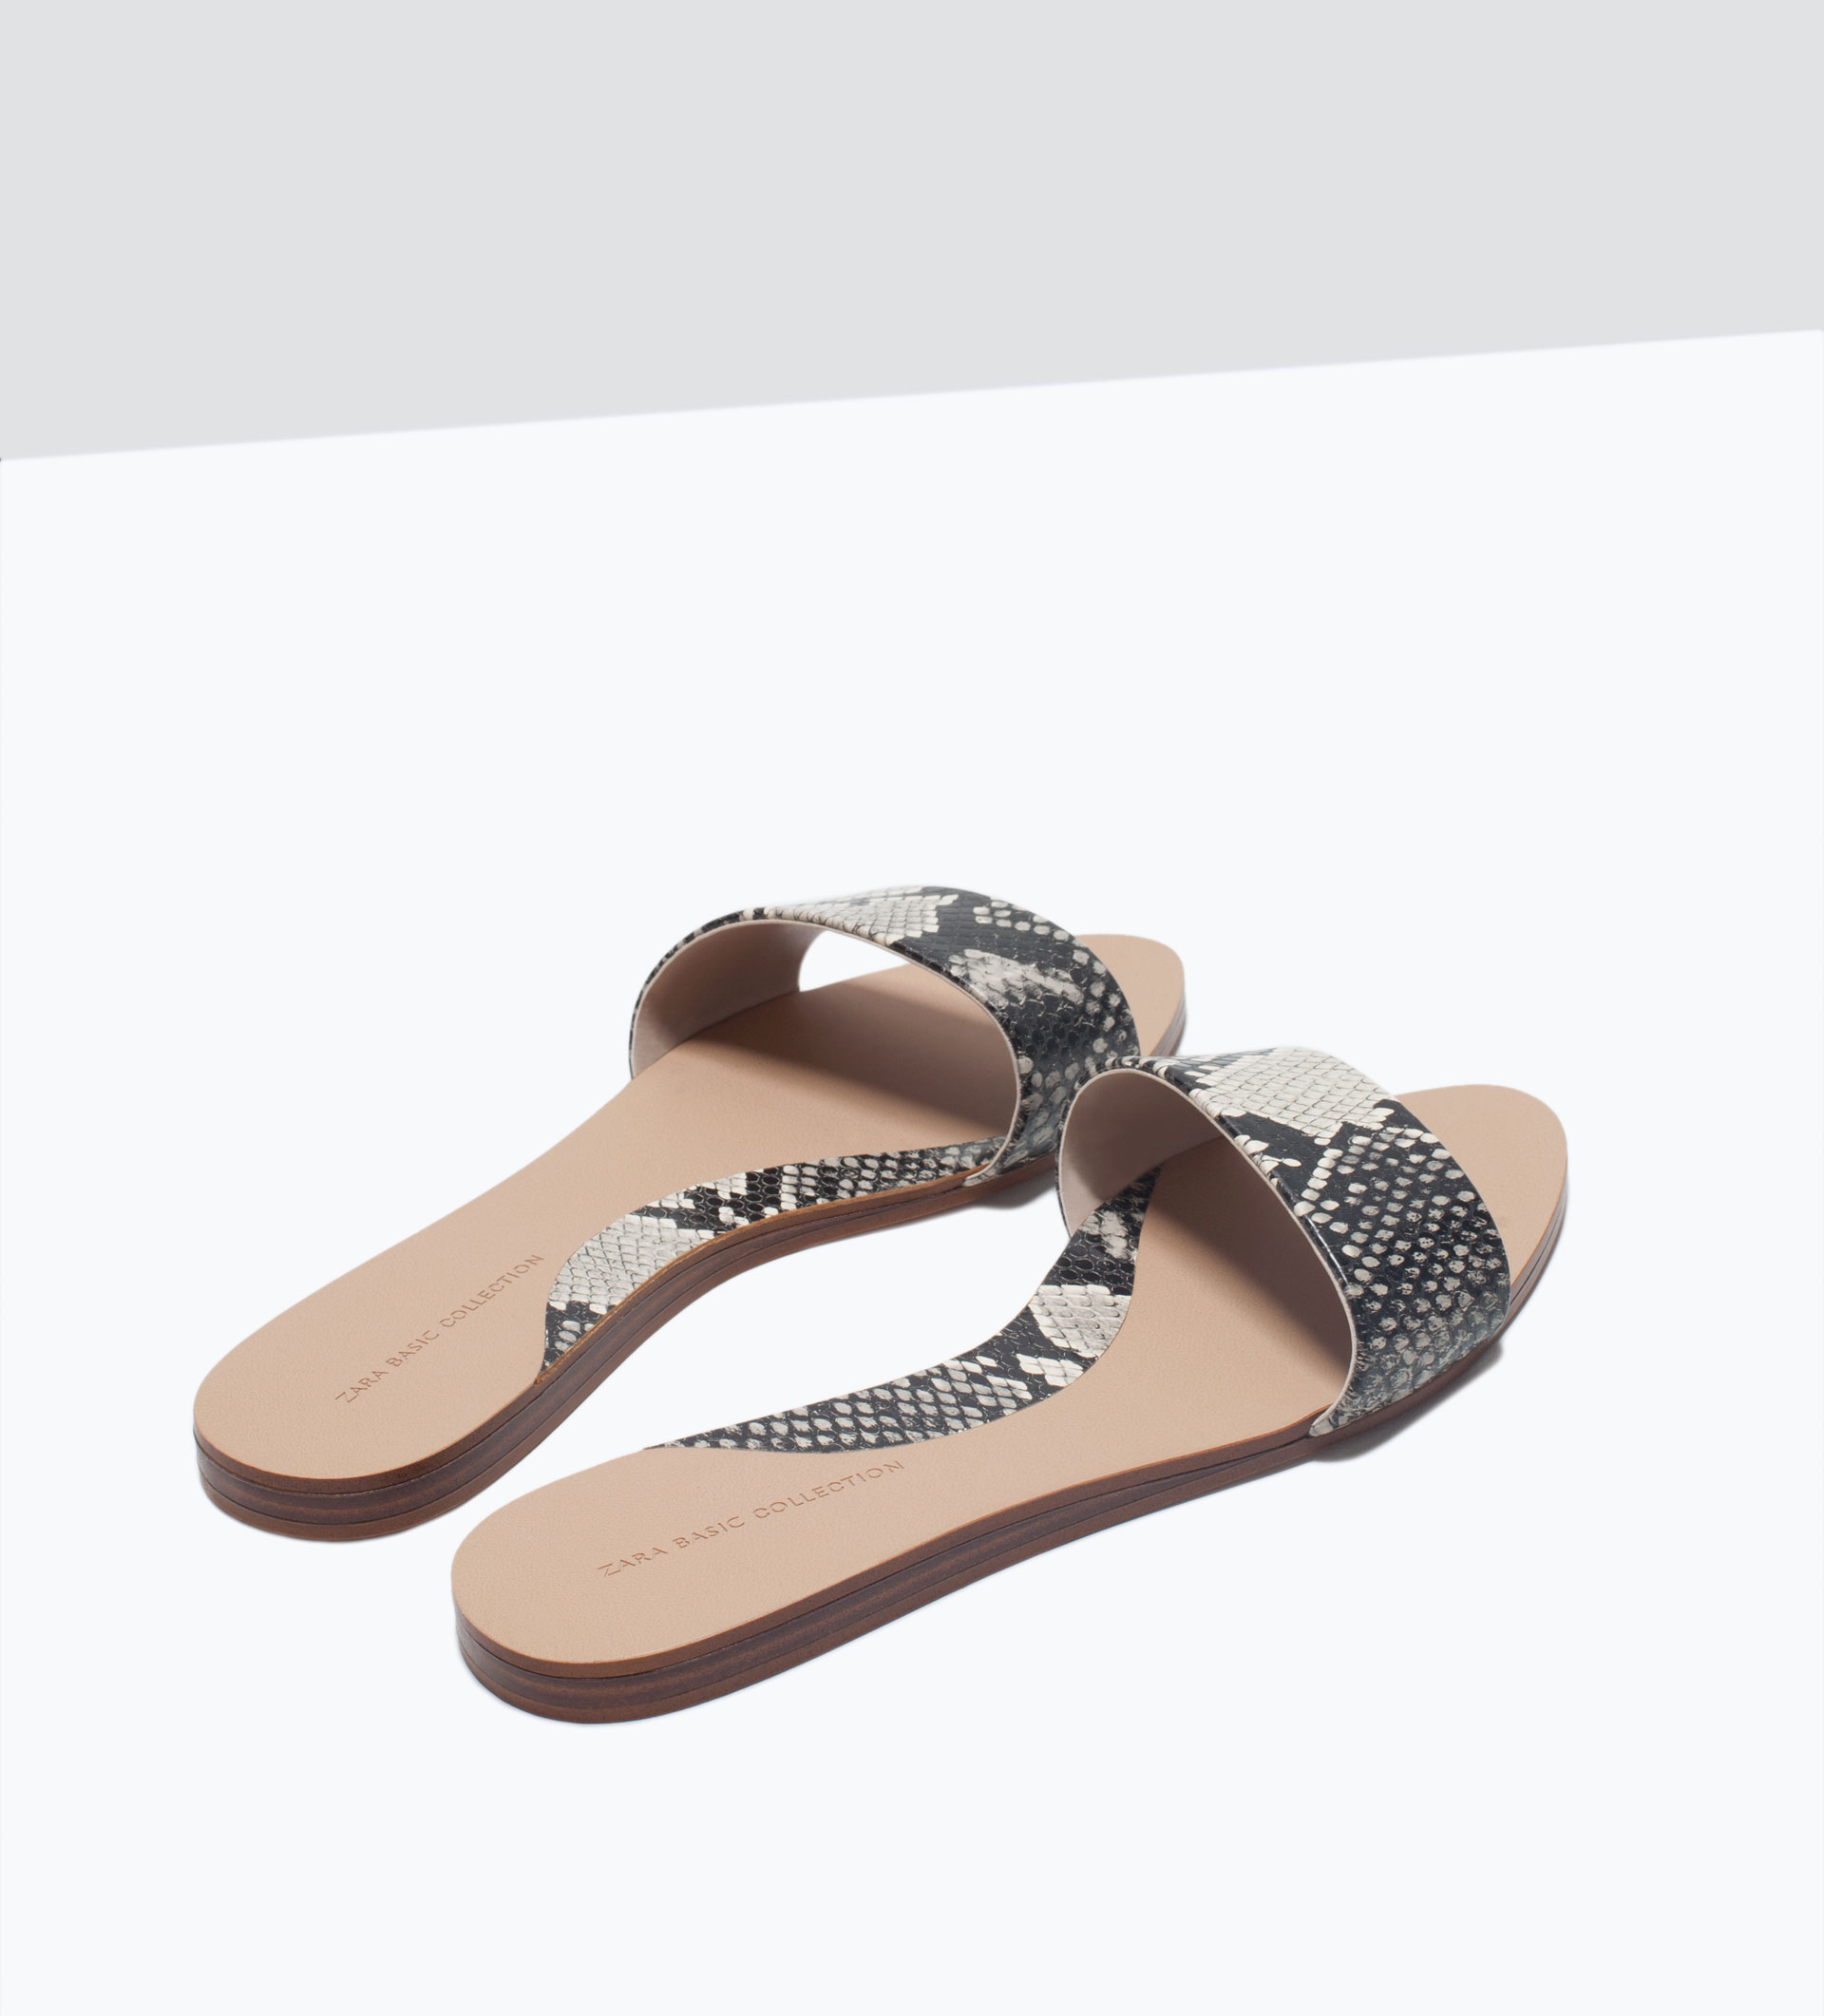 Fantastic Zara Flat Leather Shoes In Multicolor  Lyst